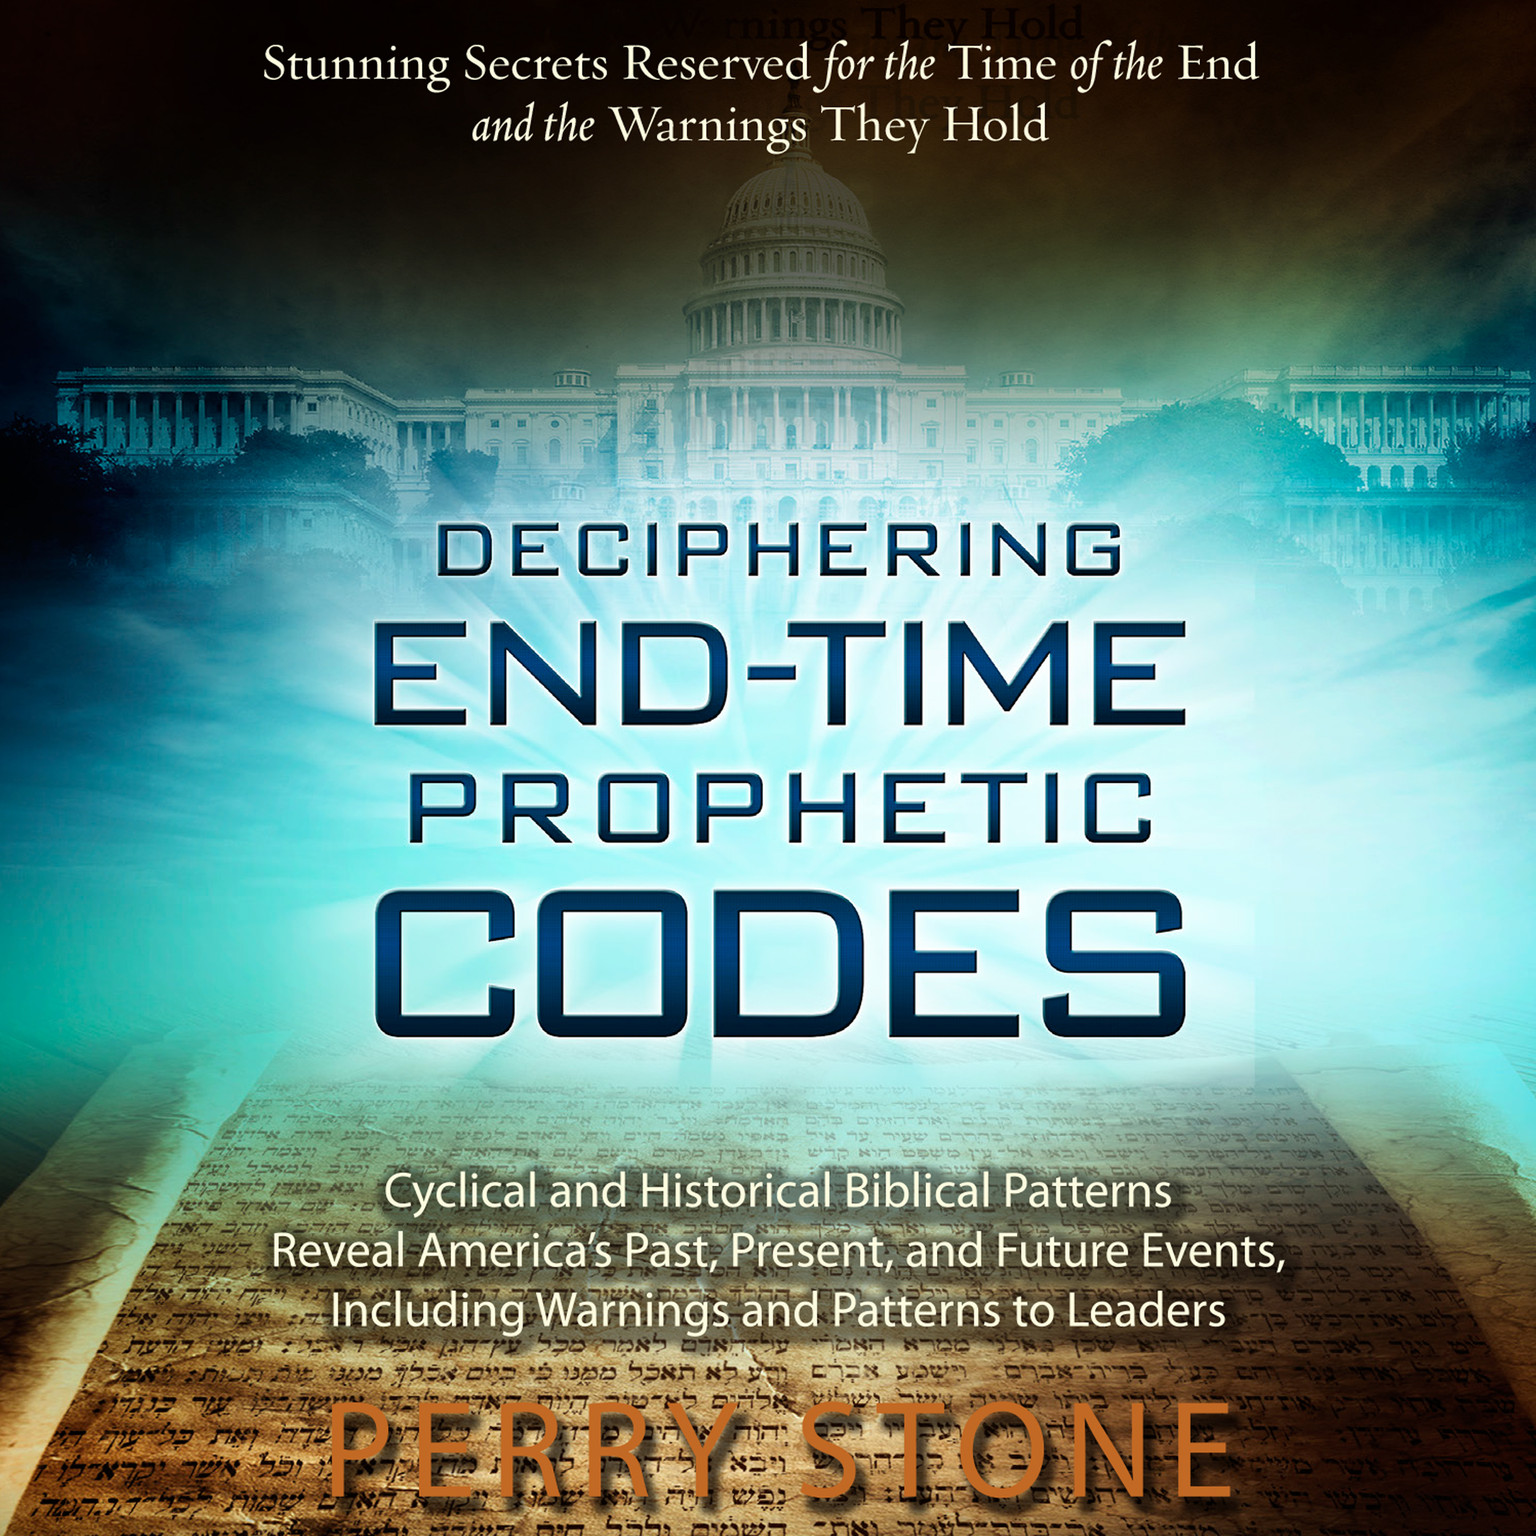 Printable Deciphering End-Time Prophetic Codes: Cyclical and Historical Biblical Patterns Reveal America's Past, Present and Future Events, including Warnings and Patterns to Leaders Audiobook Cover Art